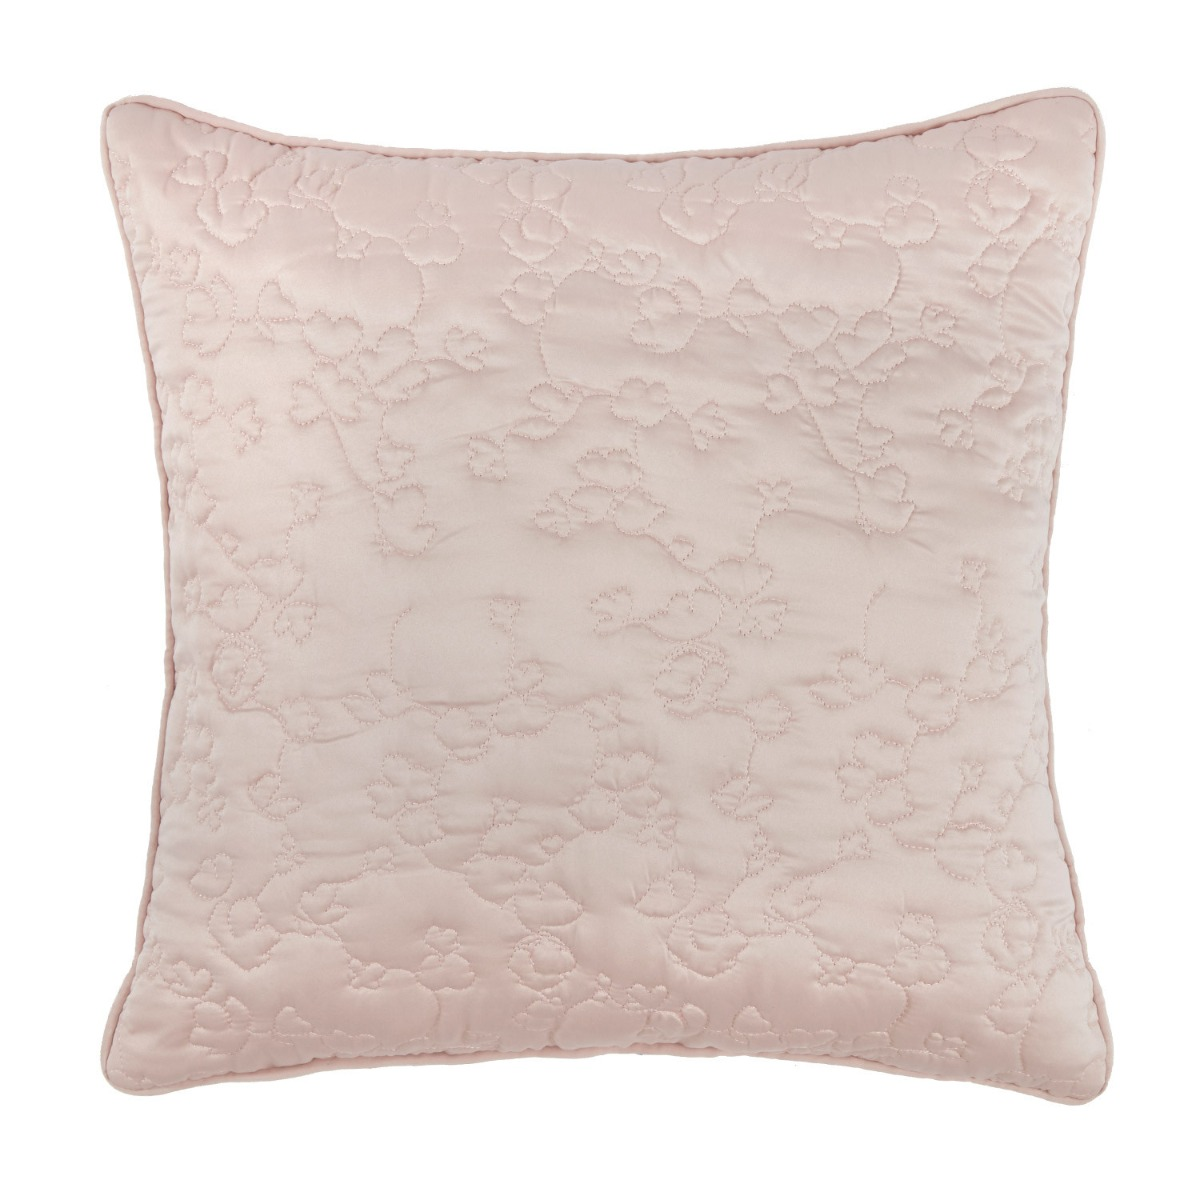 Blossom Pink Luxury Quilted Square Cushion Cover